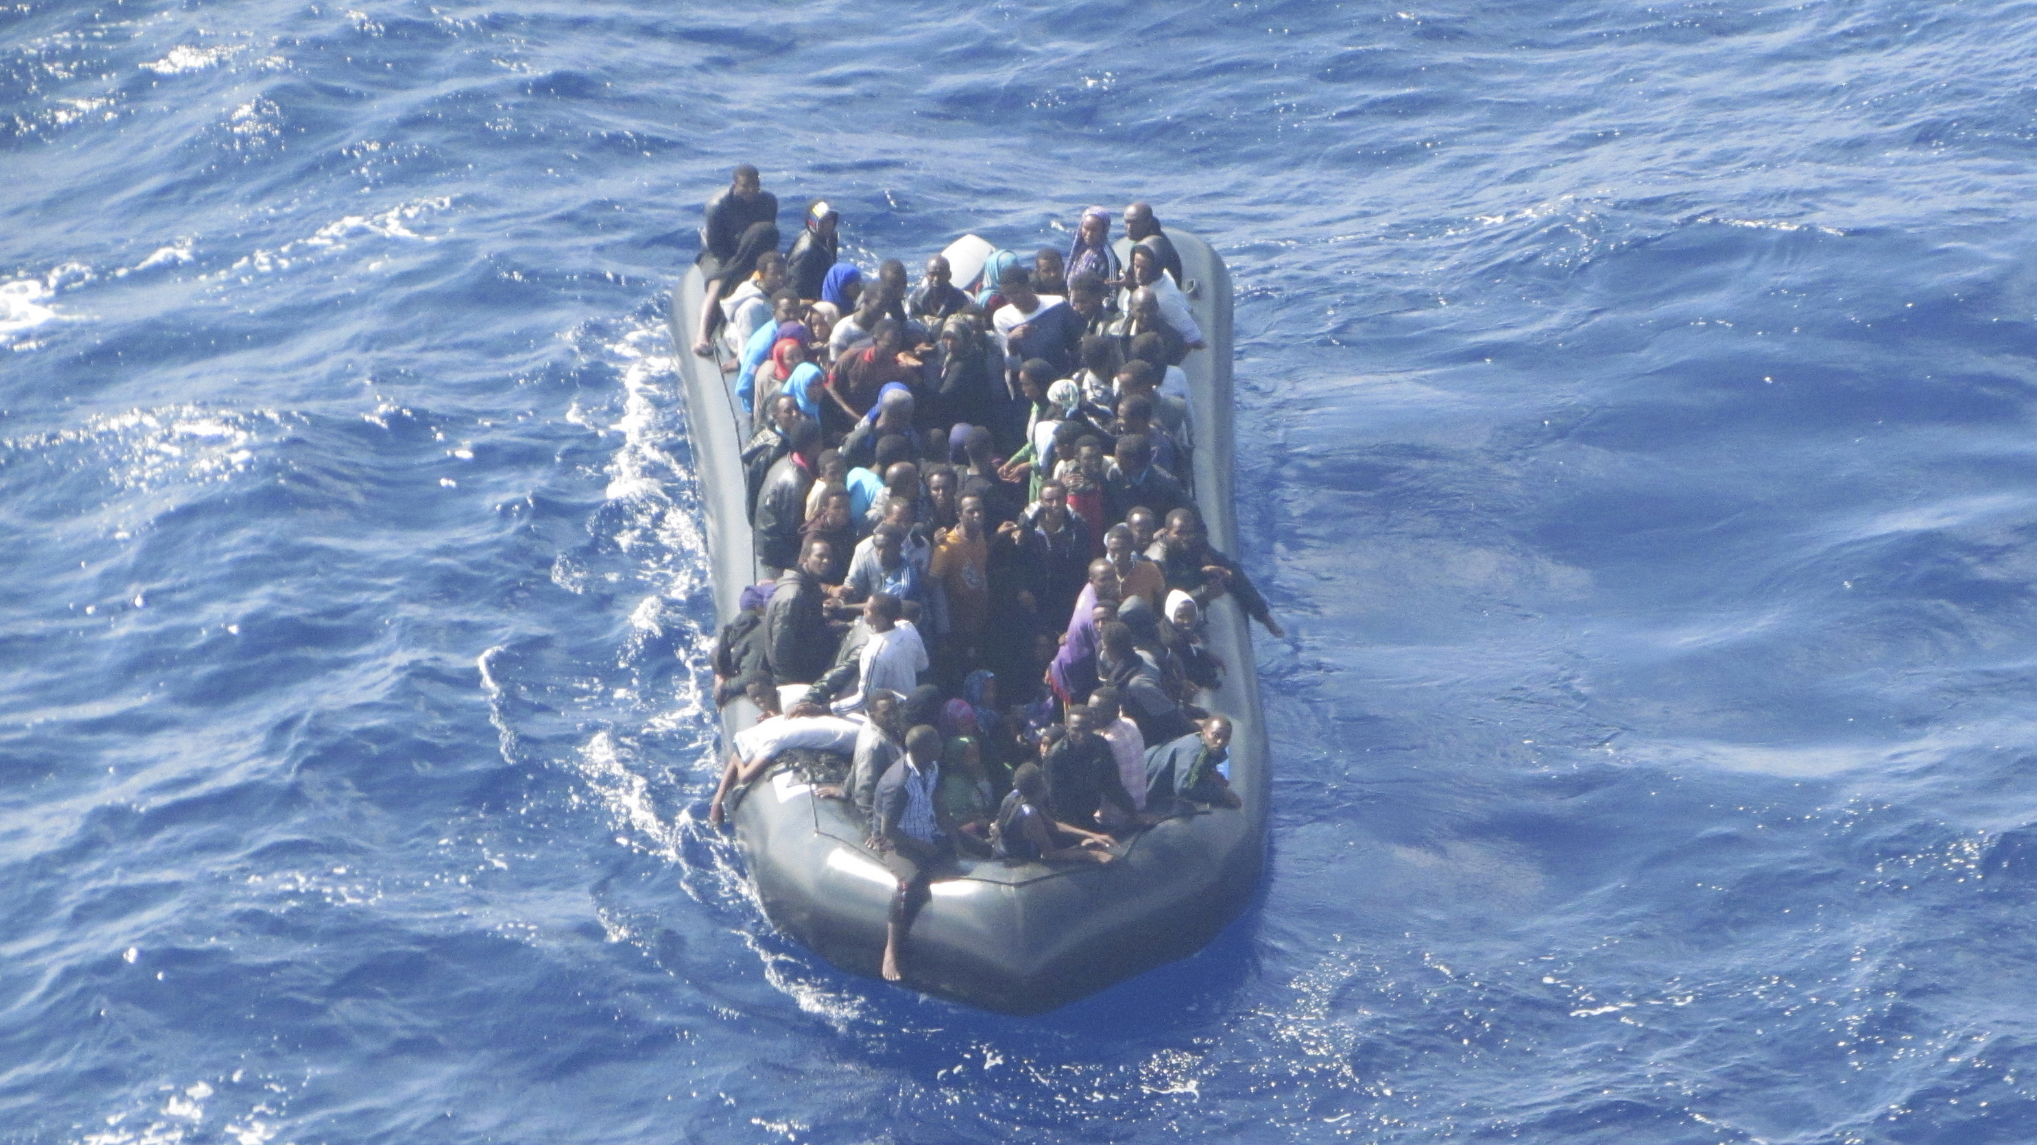 Some 93 immigrants are seen crammed onto a rubber dinghy filmed from a Guardia di Finanza police helicopter near the southern coast of the Sicilian island Lampedusa October 8, 2012. Picture taken October 8, 2012. REUTERS/Guardia di Finanza Press Office/Handout